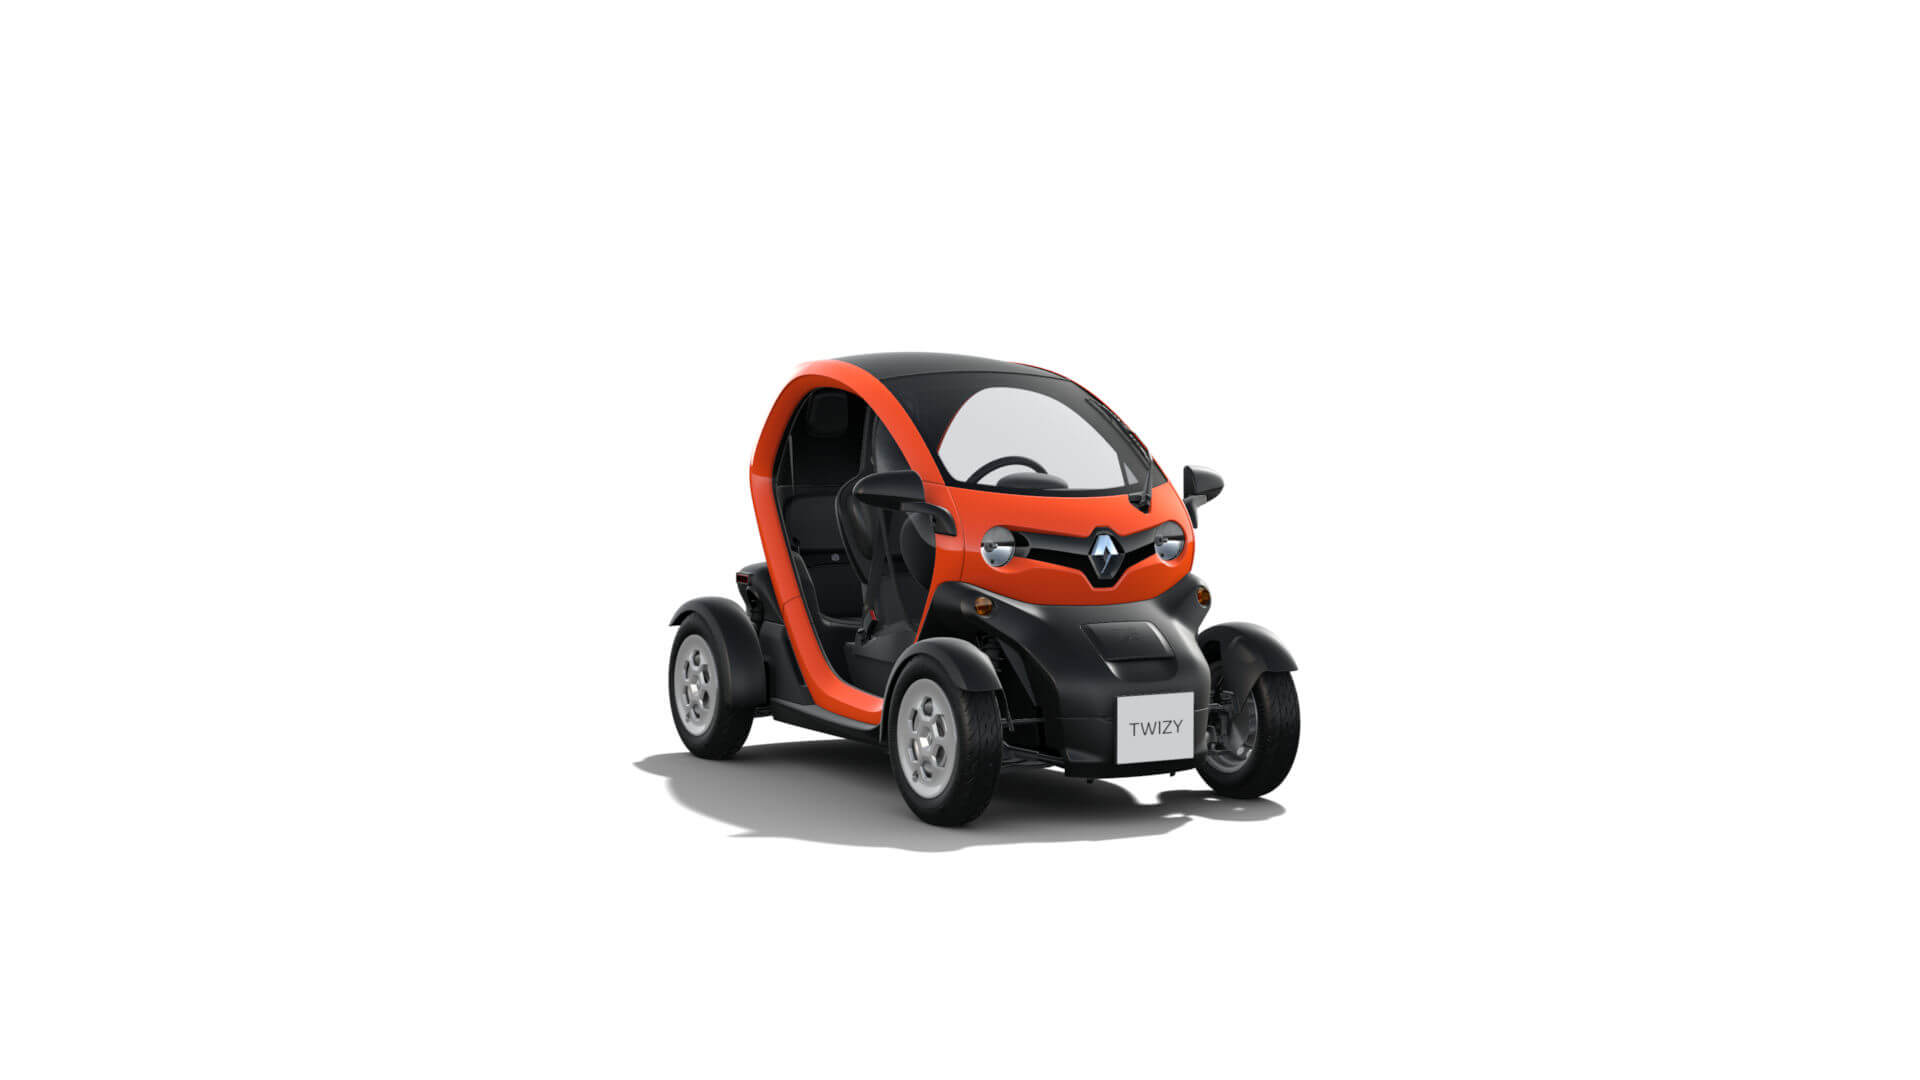 Automodell orange - Renault Twizy - Renault Ahrens Hannover